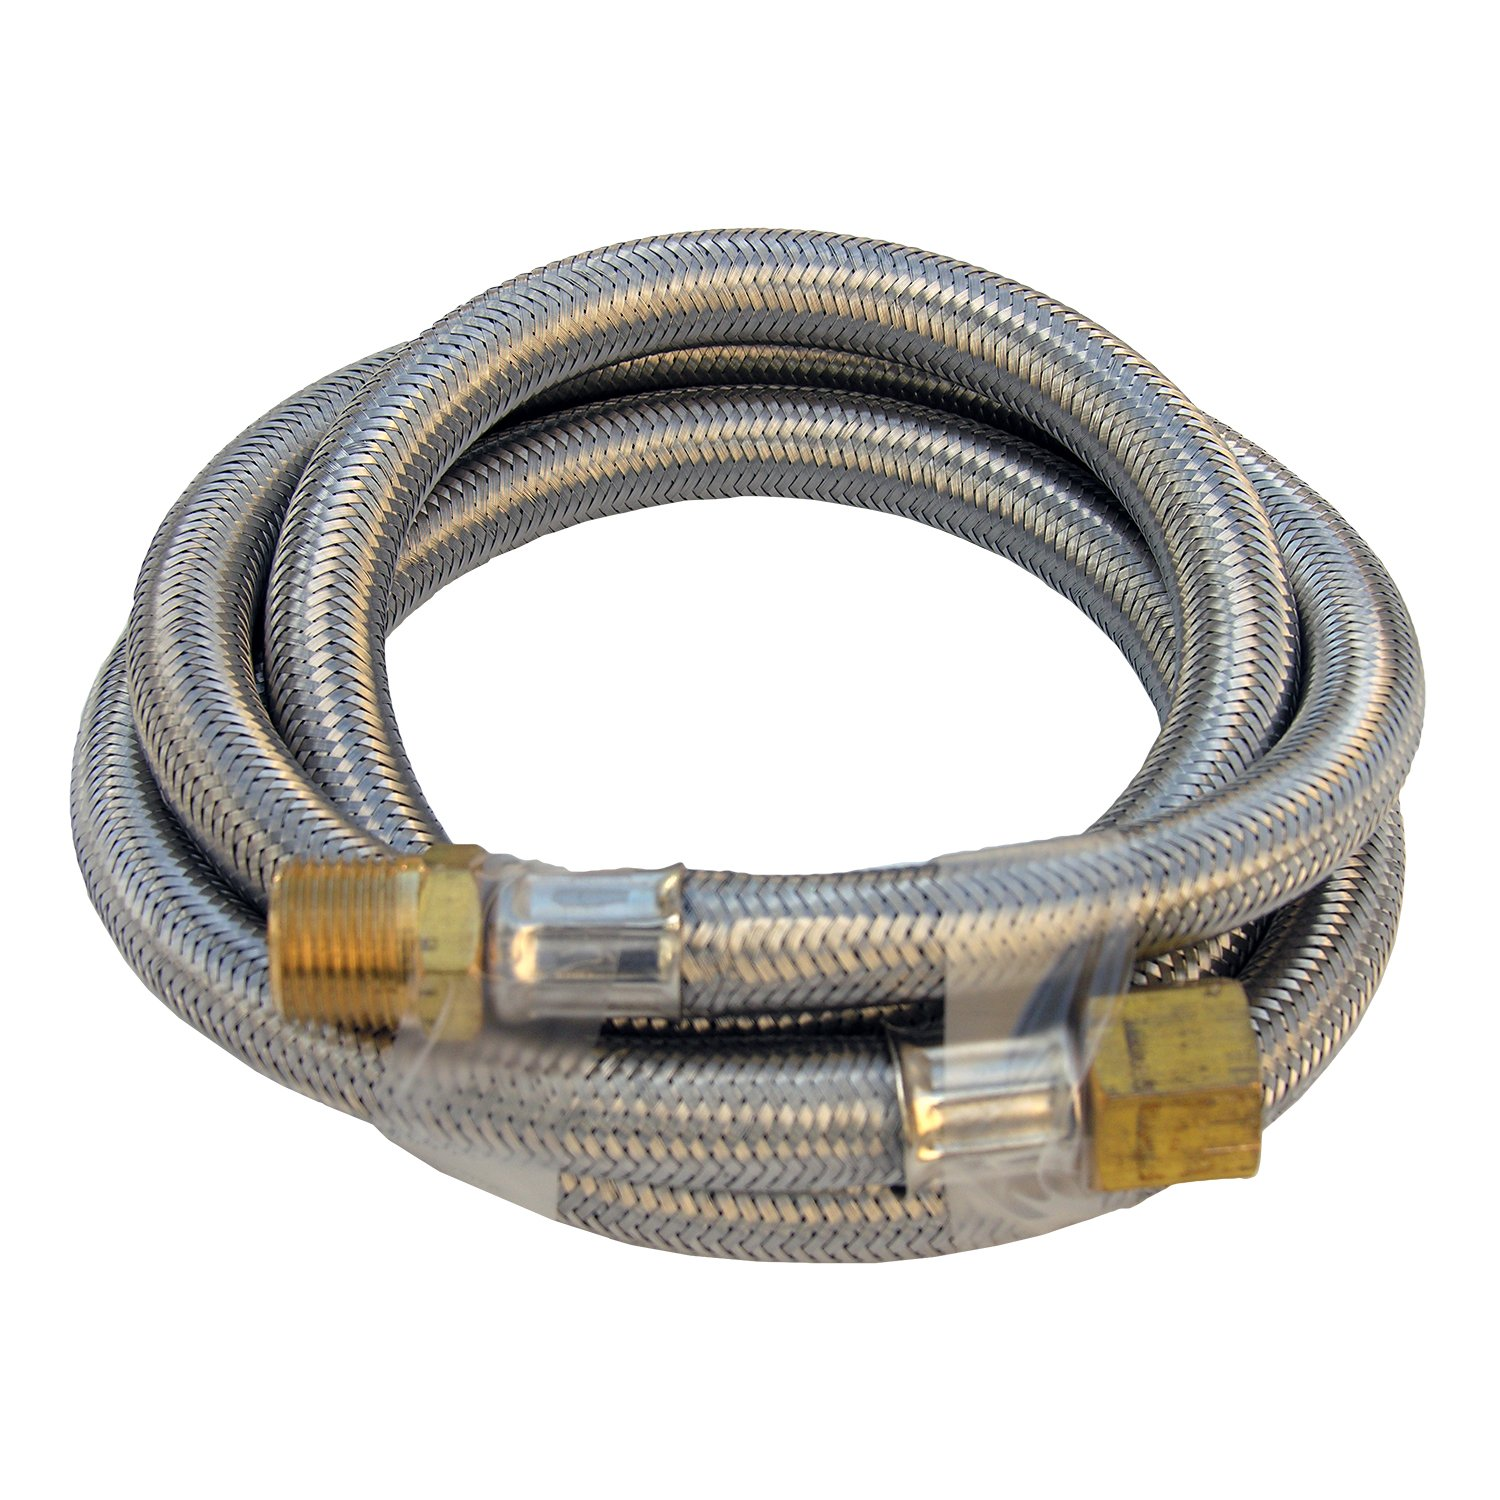 Lasco 16-9181 Stainless Steel Propane 5-Feet Extension Hose with 1//4-Inch Pipe Thread